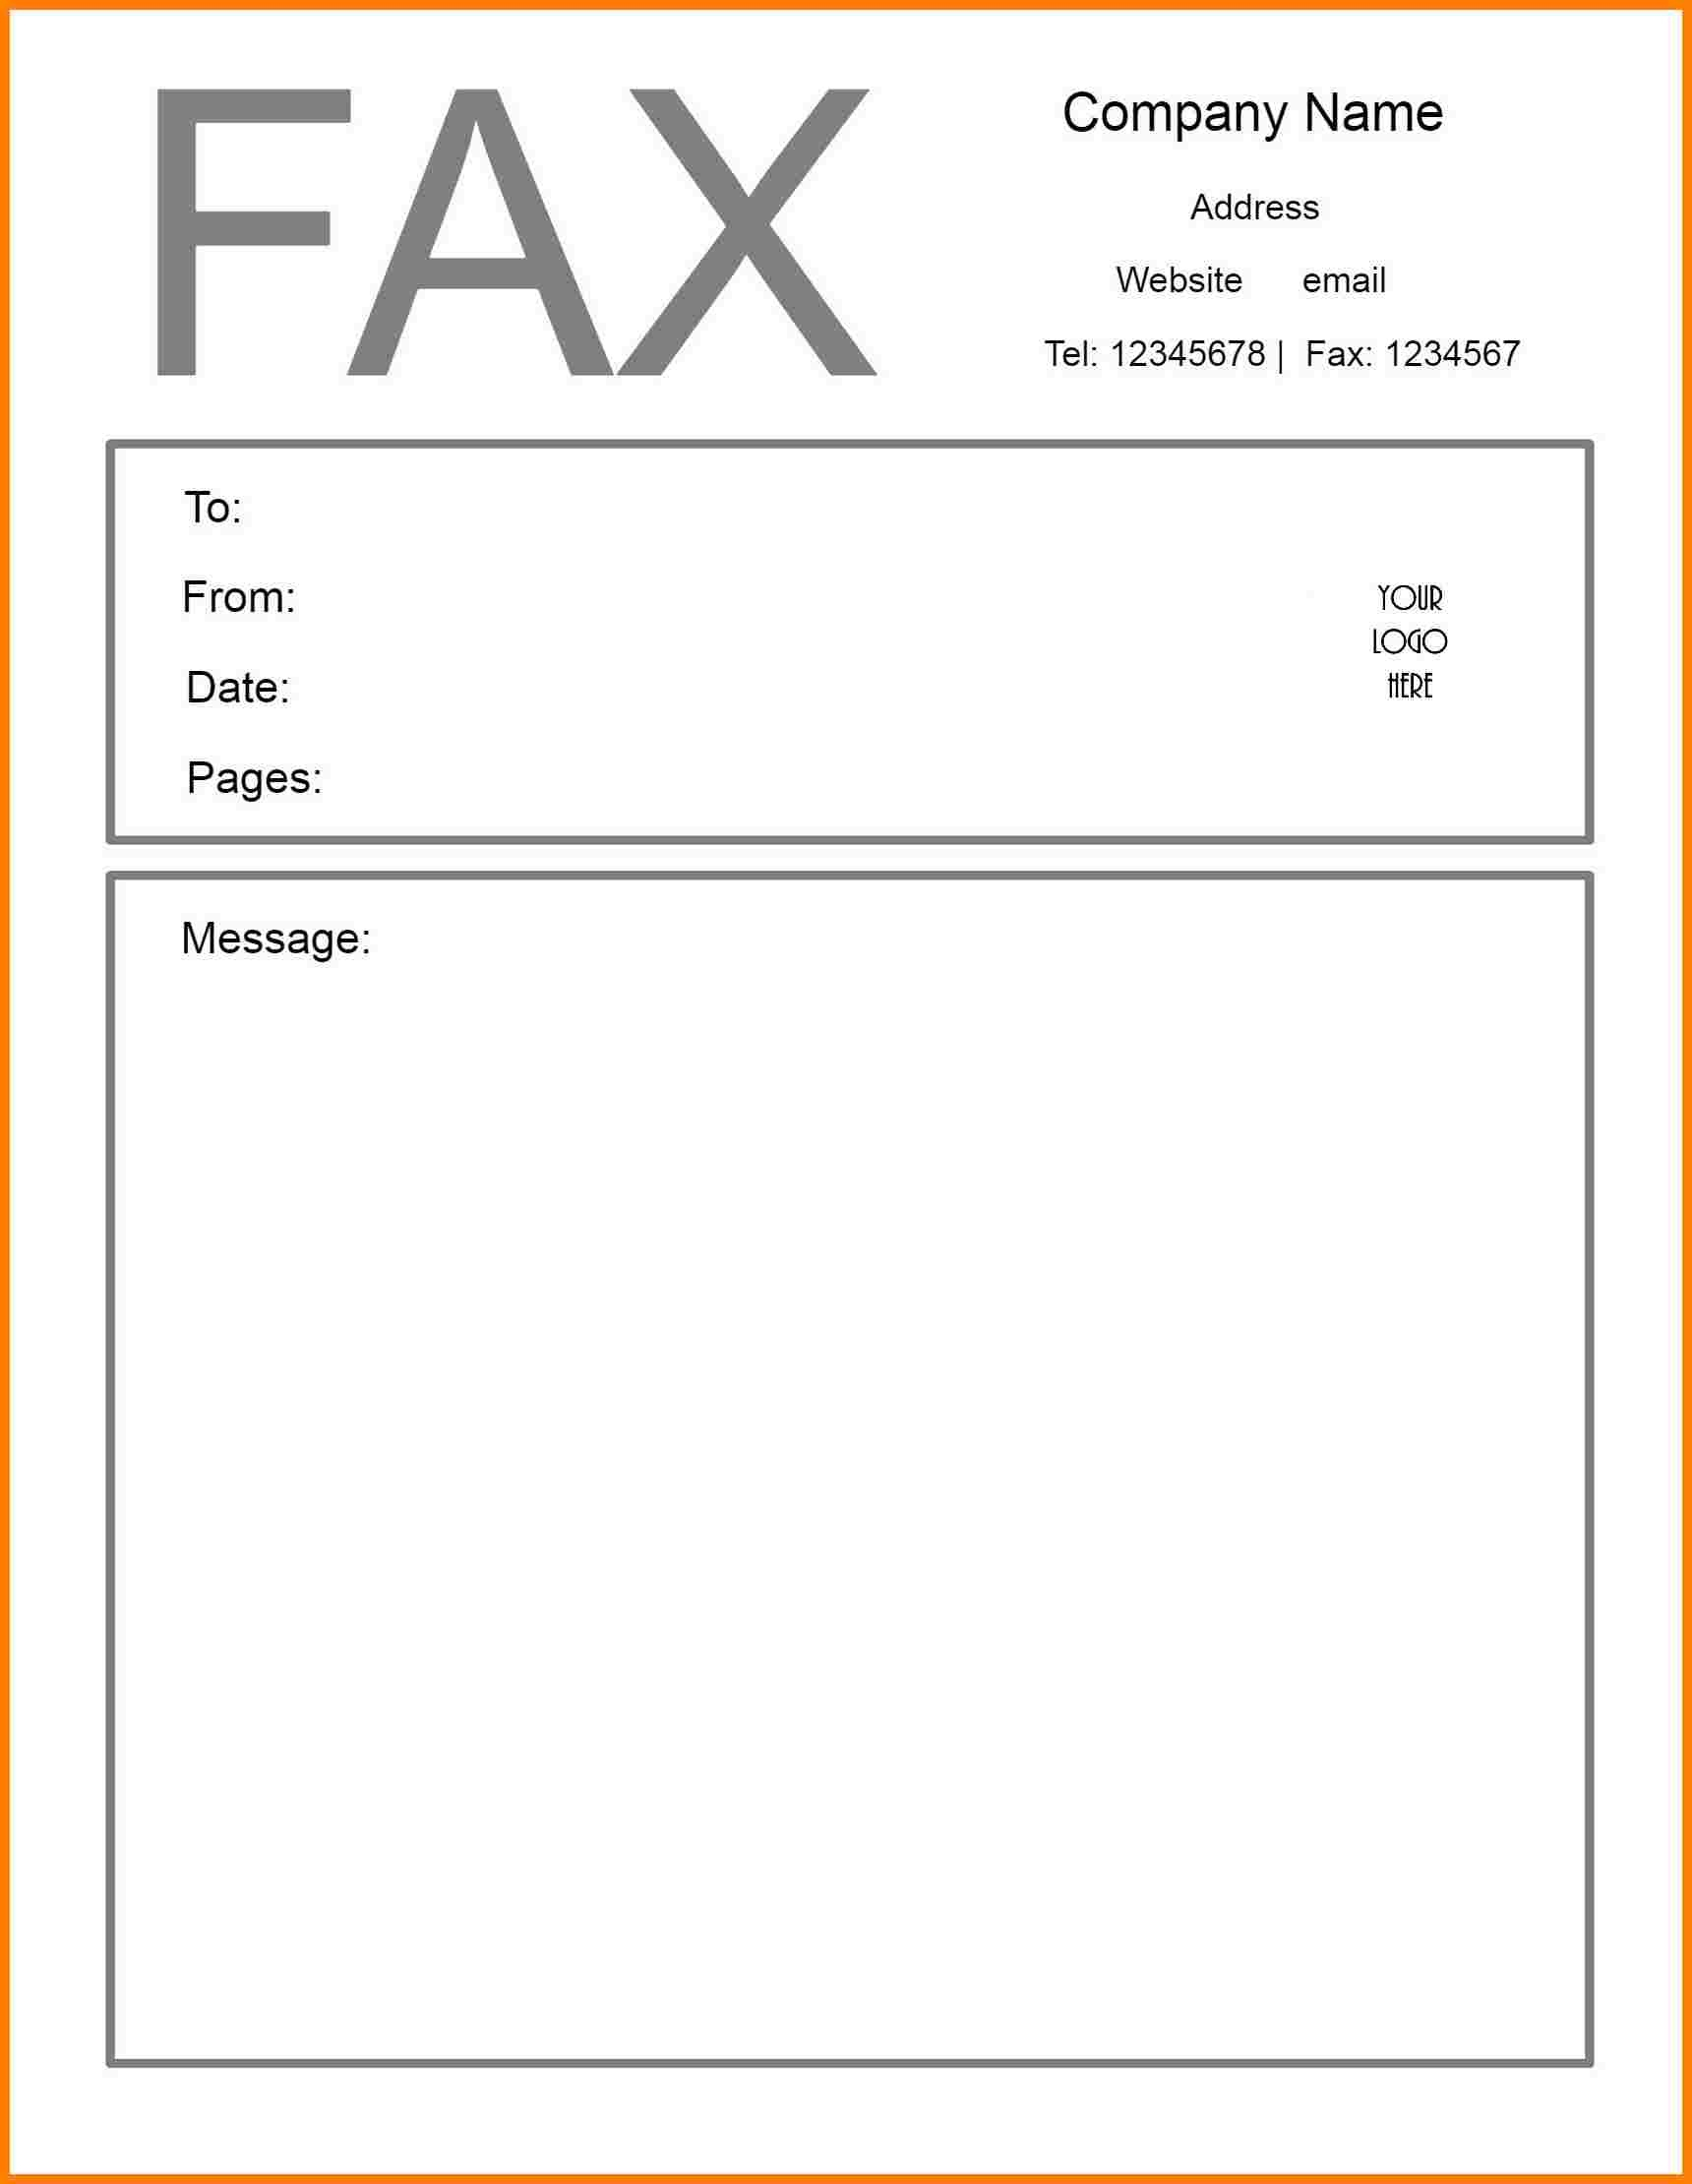 Free Printable Fax Cover Sheet | Printable Fax Cover Sheet - Free Printable Message Sheets